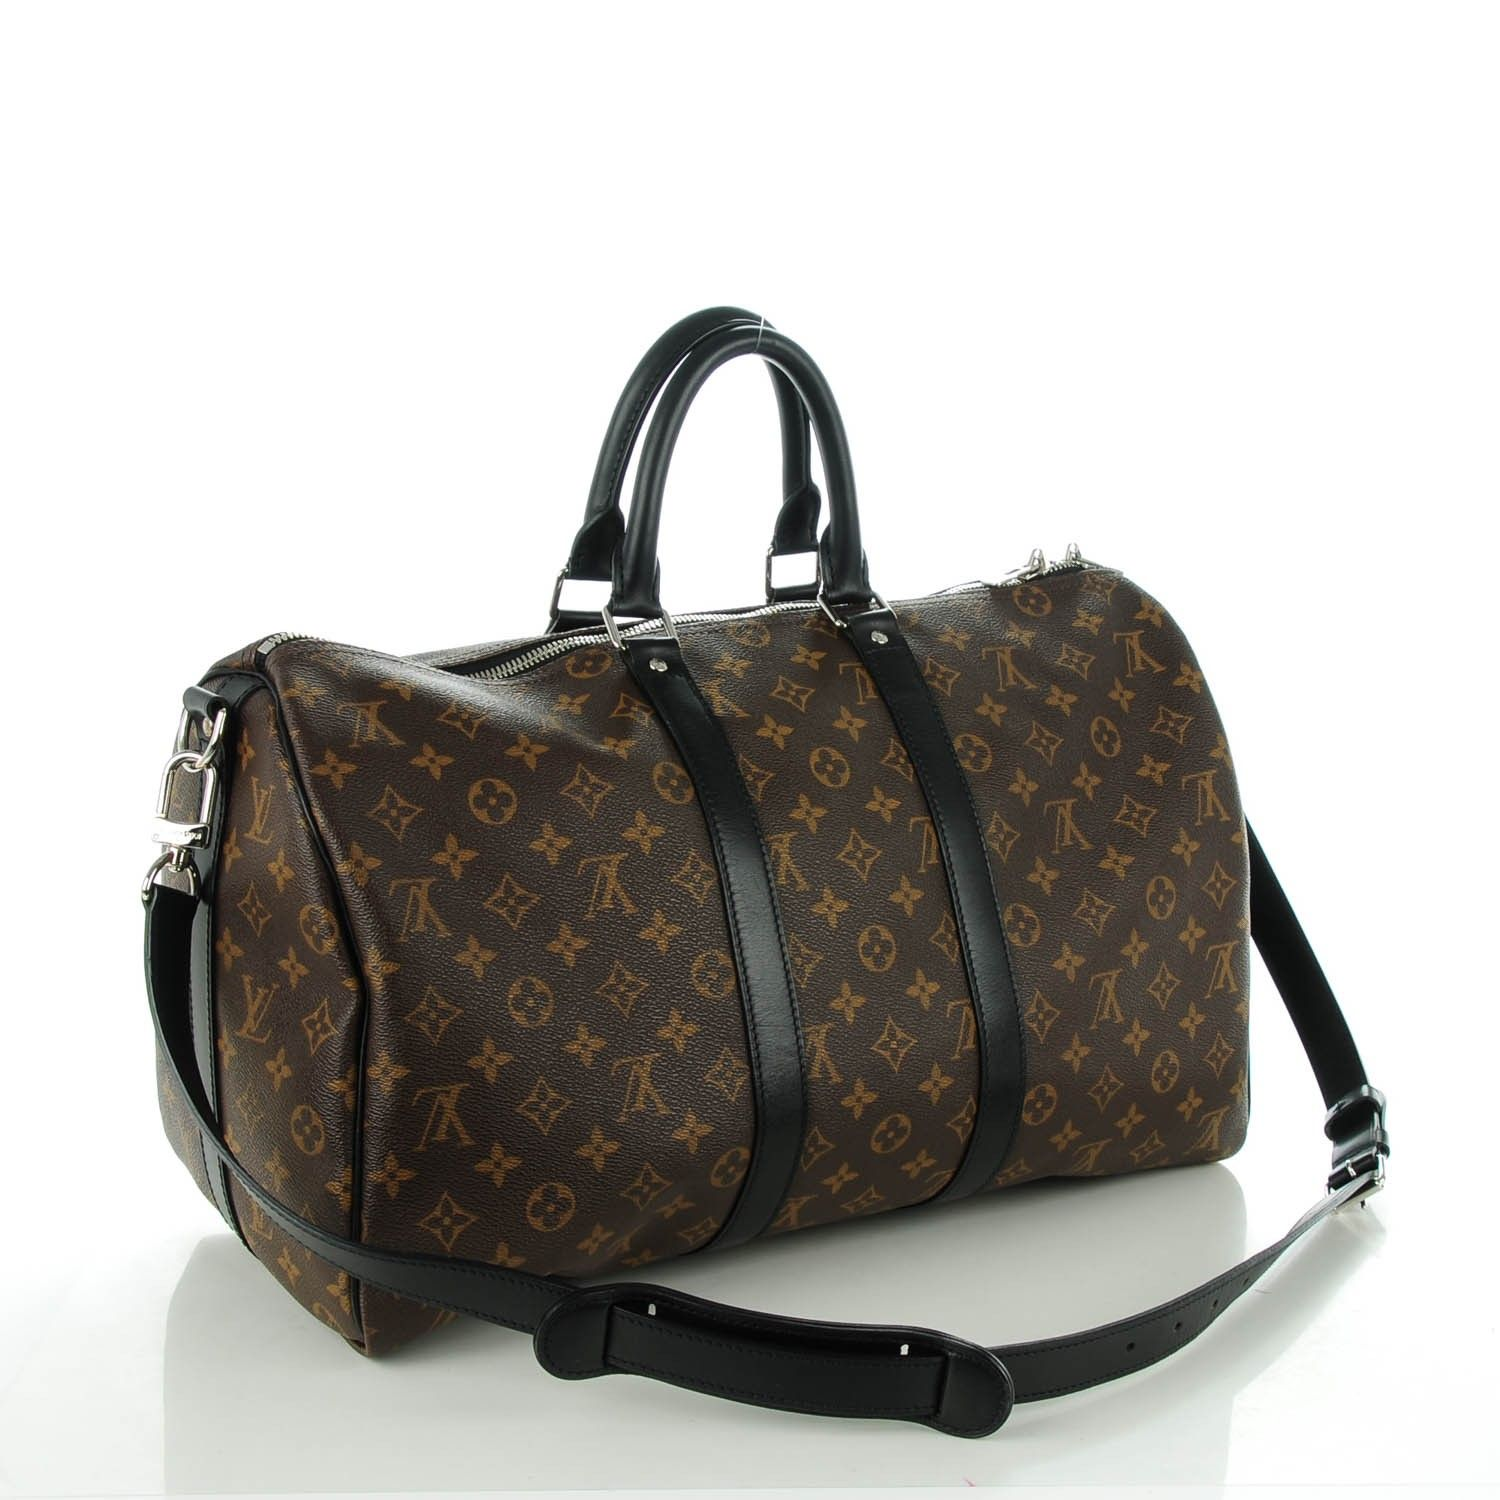 a91c5d1ff This is an authentic LOUIS VUITTON Monogram Macassar Keepall 45  Bandouliere. This stylish travel duffel